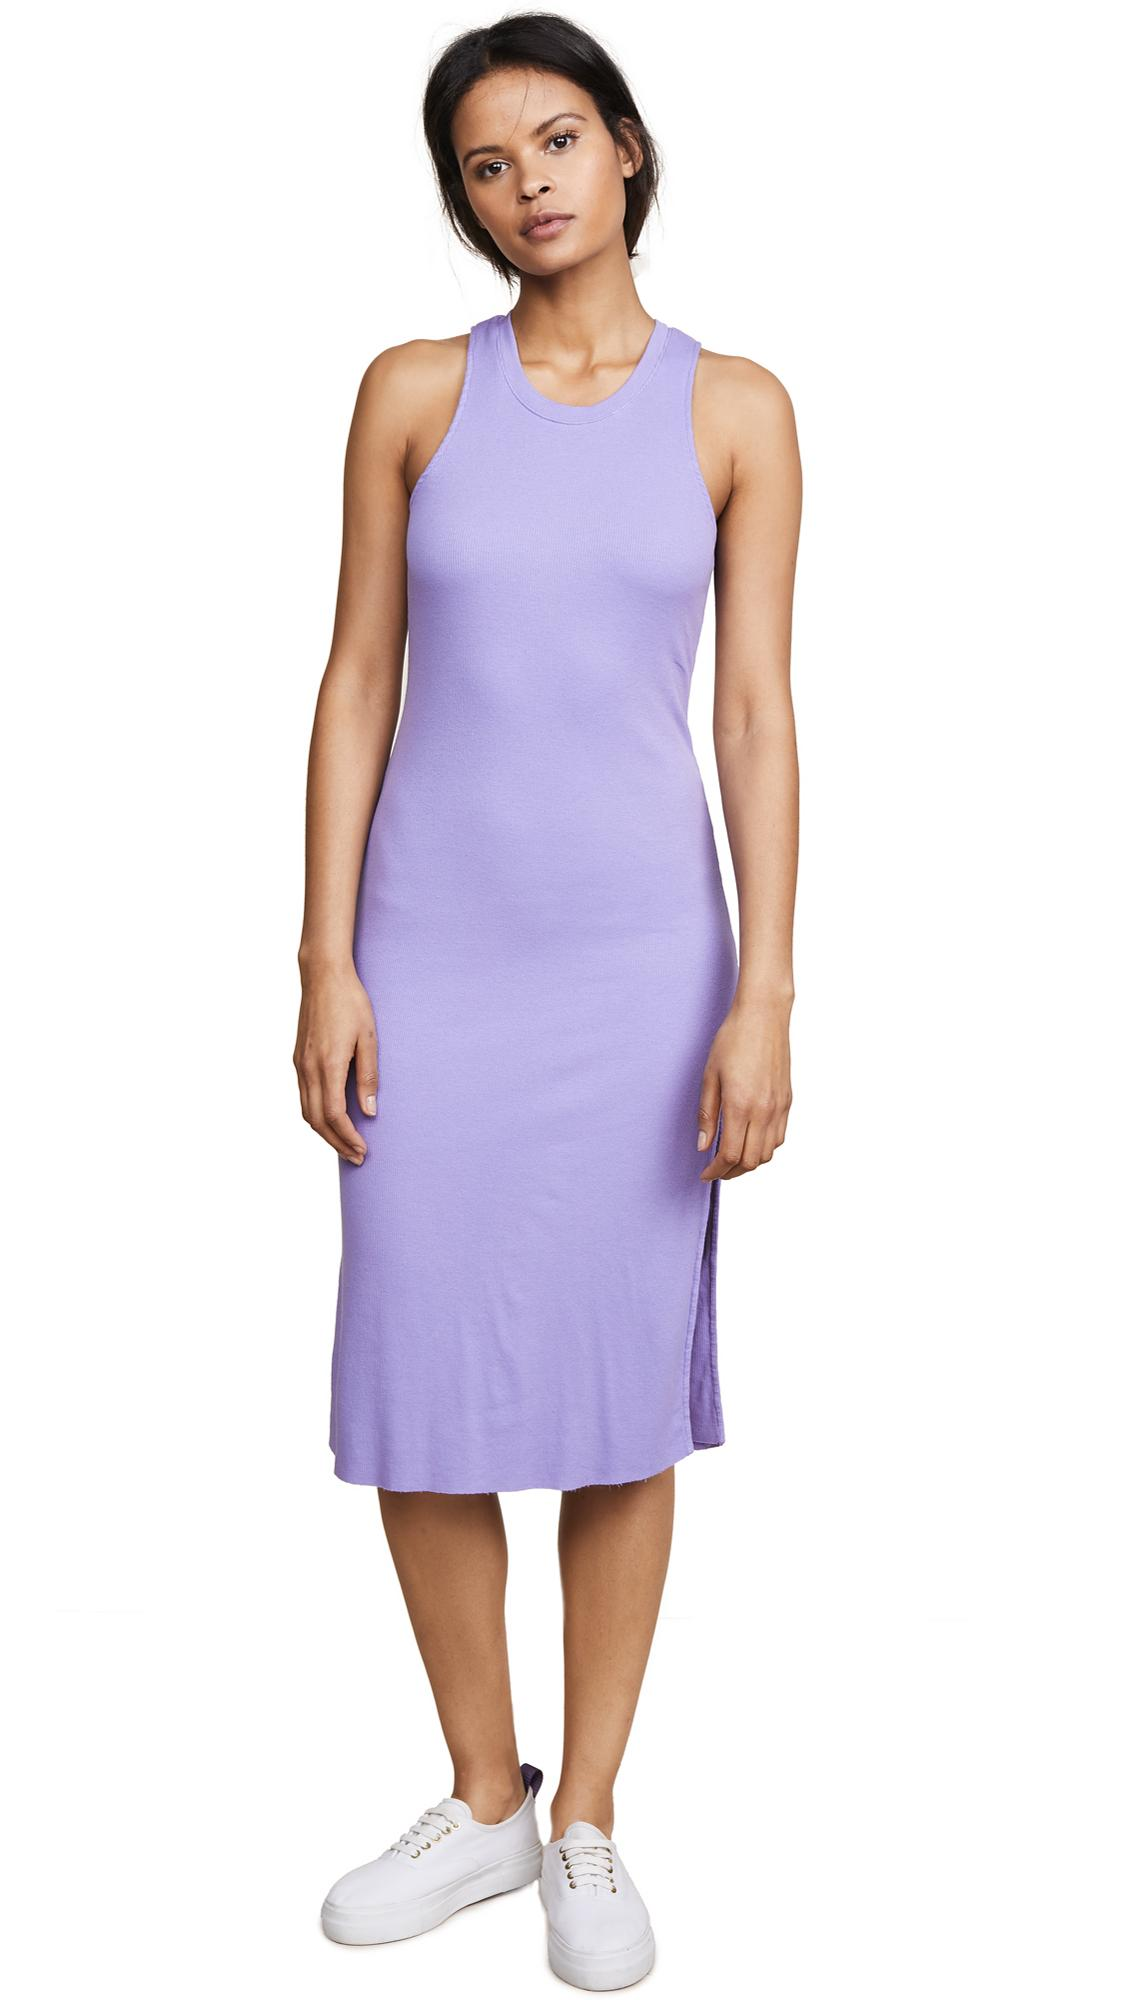 Cotton Citizen The Melbourne Tank Dress In Pastel Purple